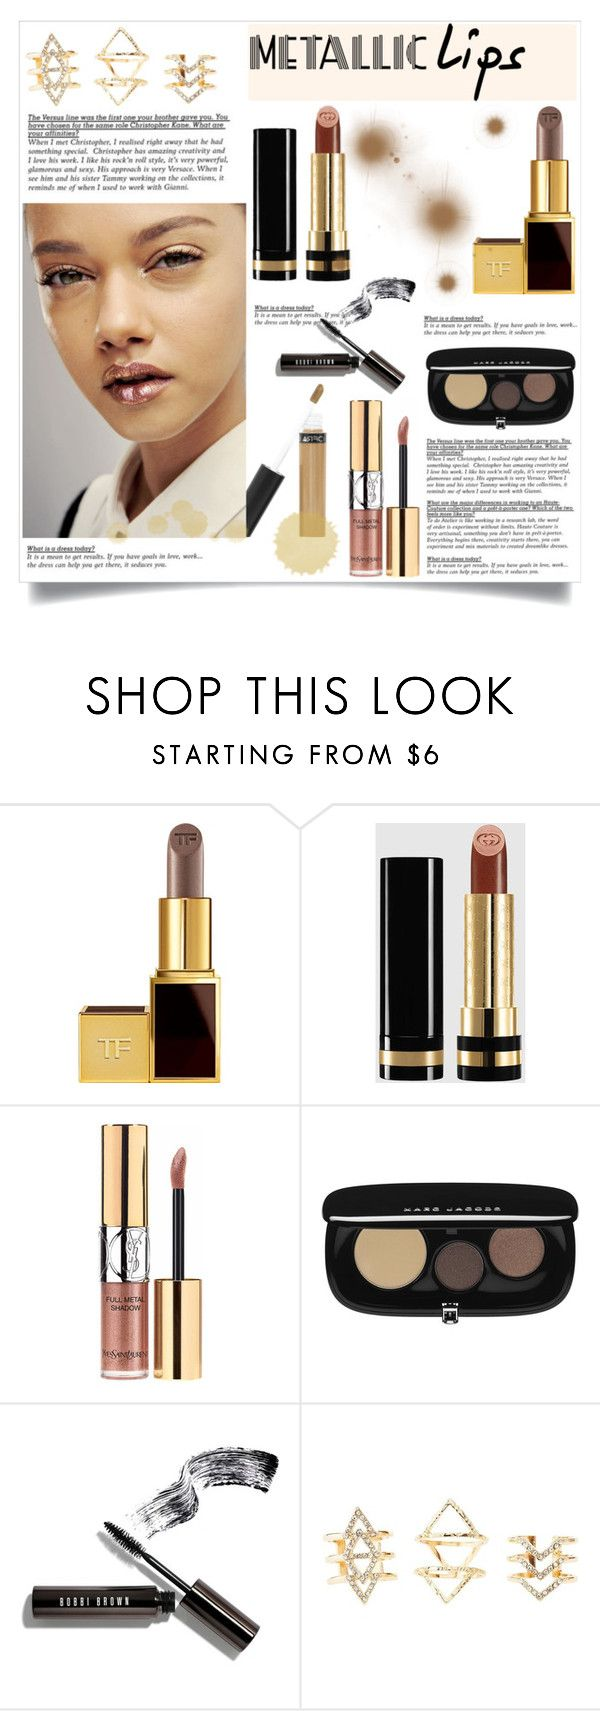 """Shine on: Metallic Lips"" by helenevlacho ❤ liked on Polyvore featuring beauty, Tom Ford, Gucci, Yves Saint Laurent, Marc Jacobs, Bobbi Brown Cosmetics, Charlotte Russe, contestentry, beautyset and metalliclips"